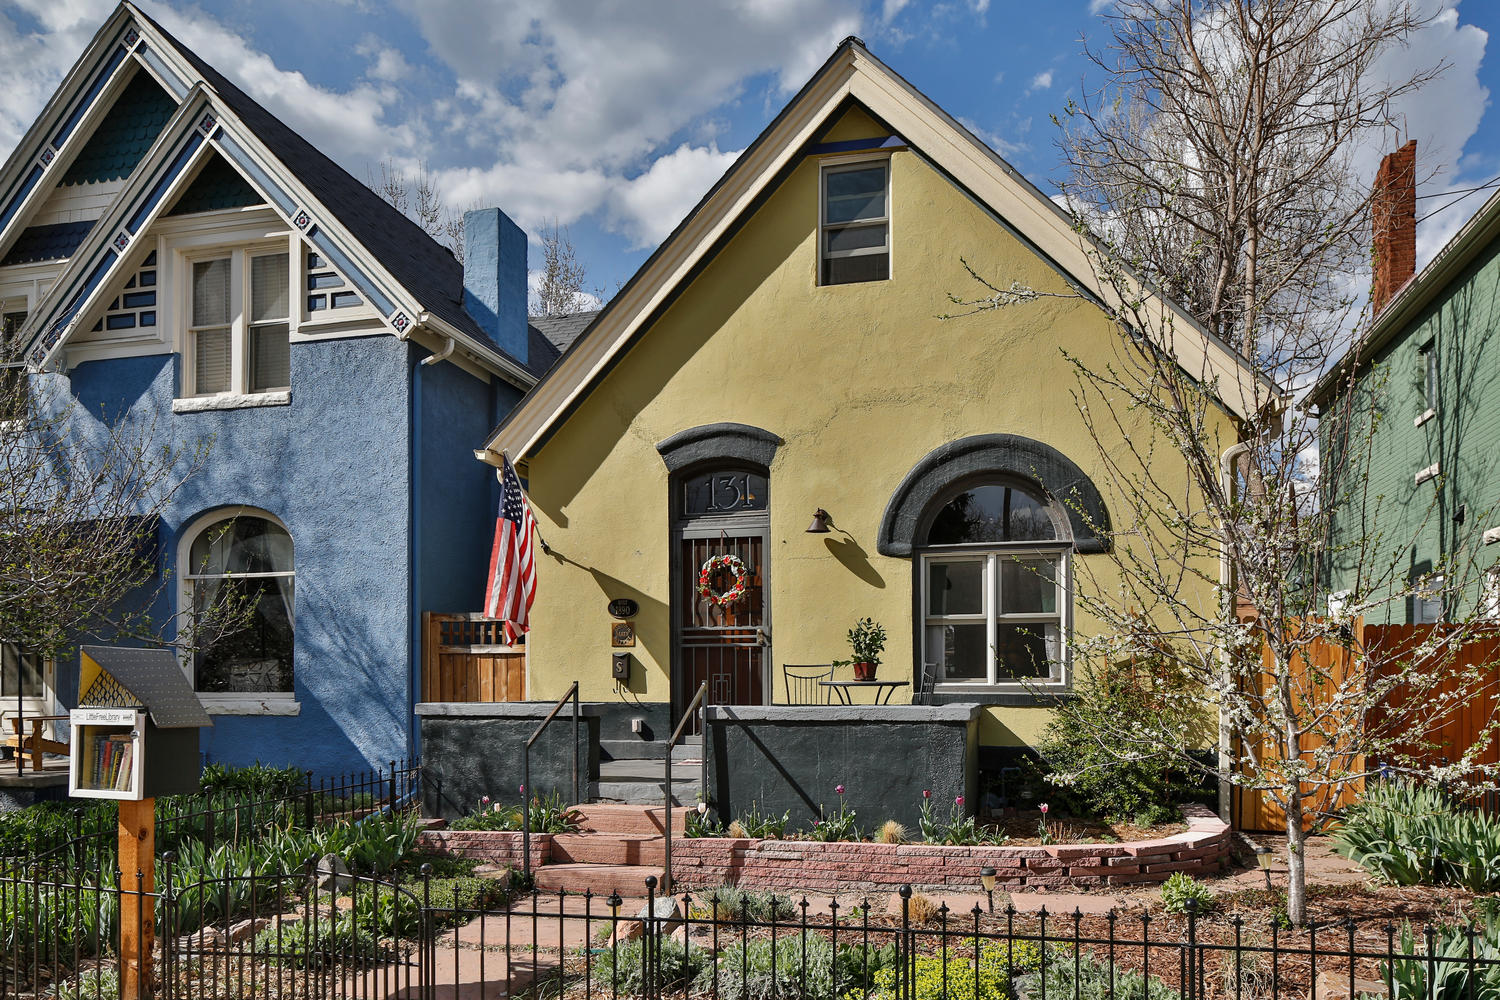 Single Family Home for Sale at Hip, Urban and Just Plain Cool 131 West Maple Avenue Baker, Denver, Colorado, 80223 United States